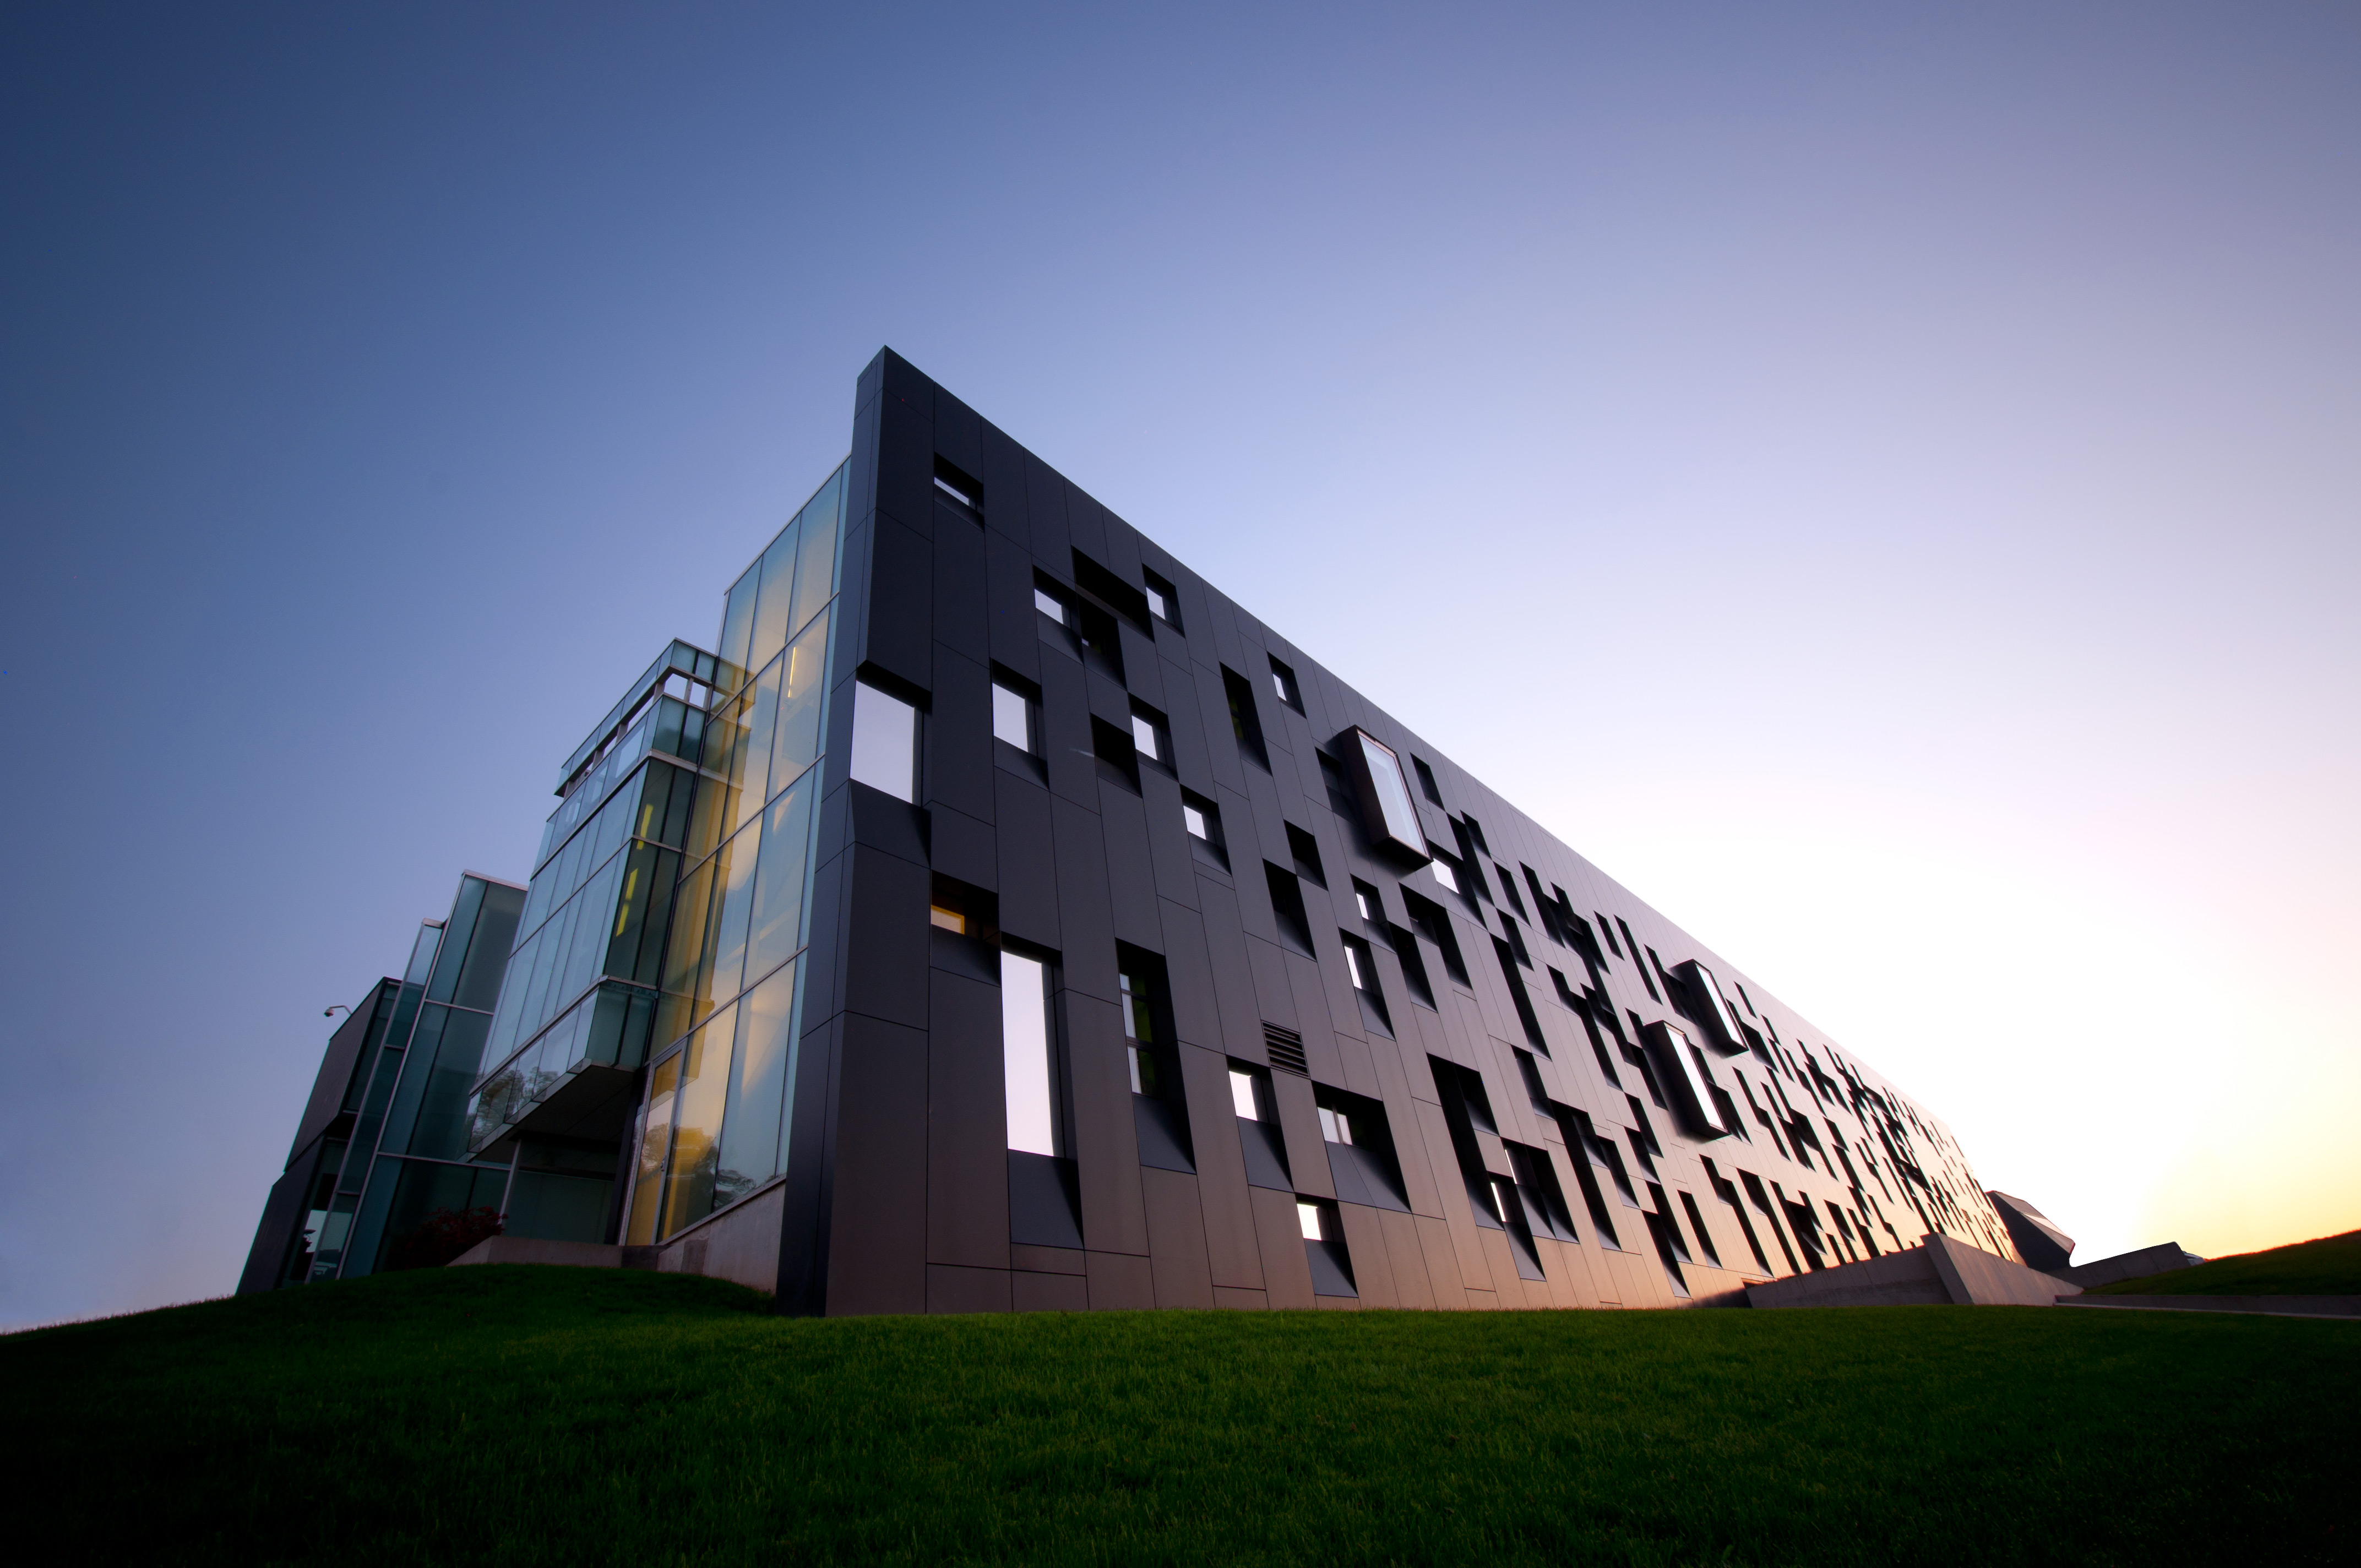 Perimeter Institute For Theoretical Physics(圖片來源:Michael Baglole@flicker)